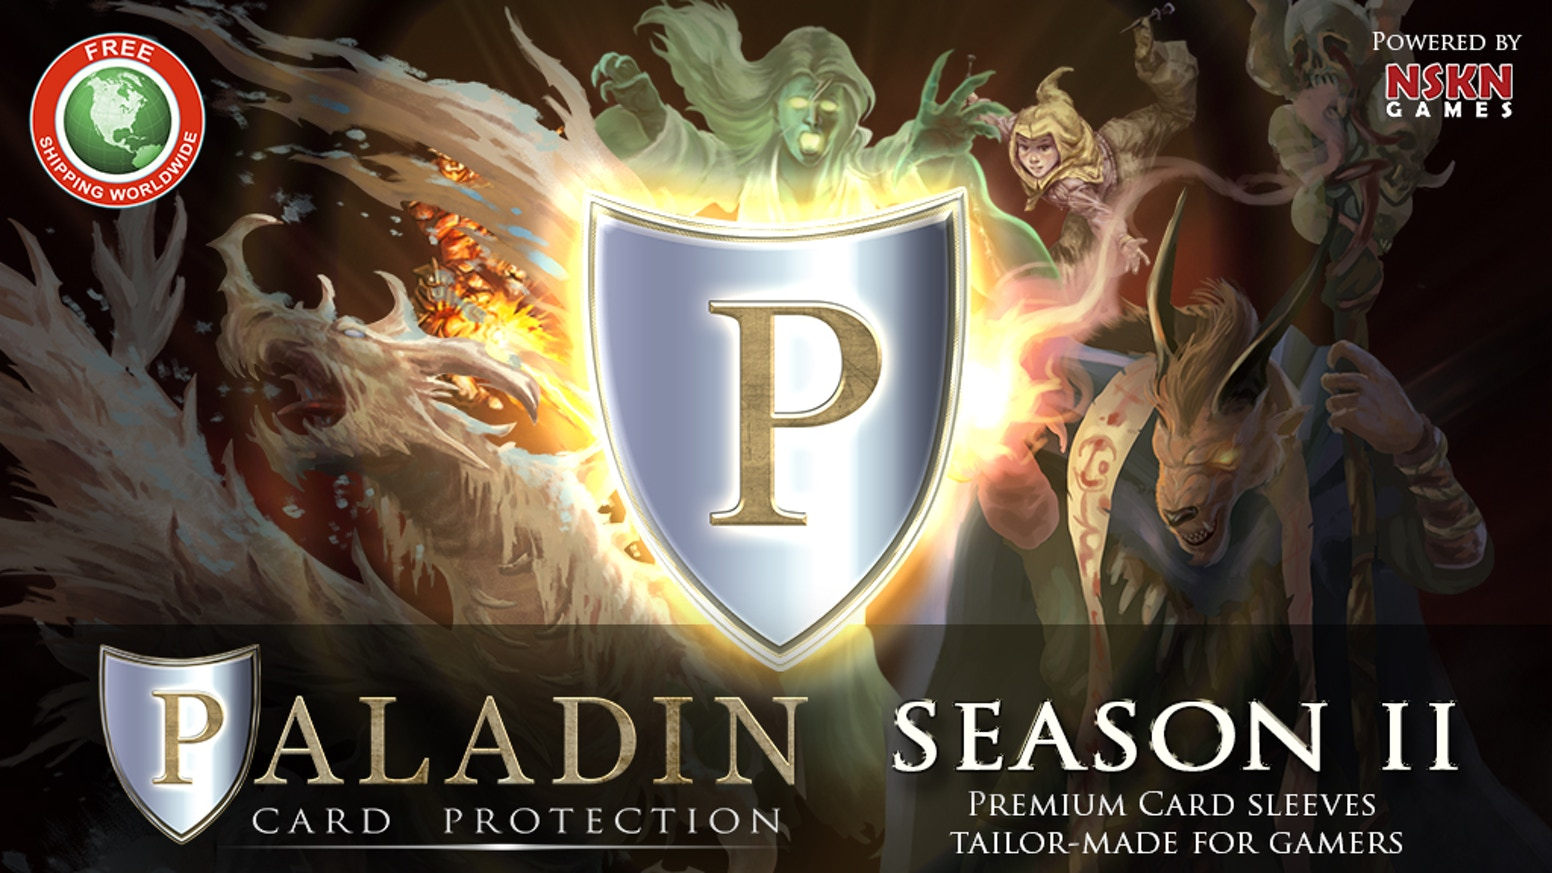 Premium card protectors for gamers. The Paladin returns with even more types of card sleeves - and the same premium quality.